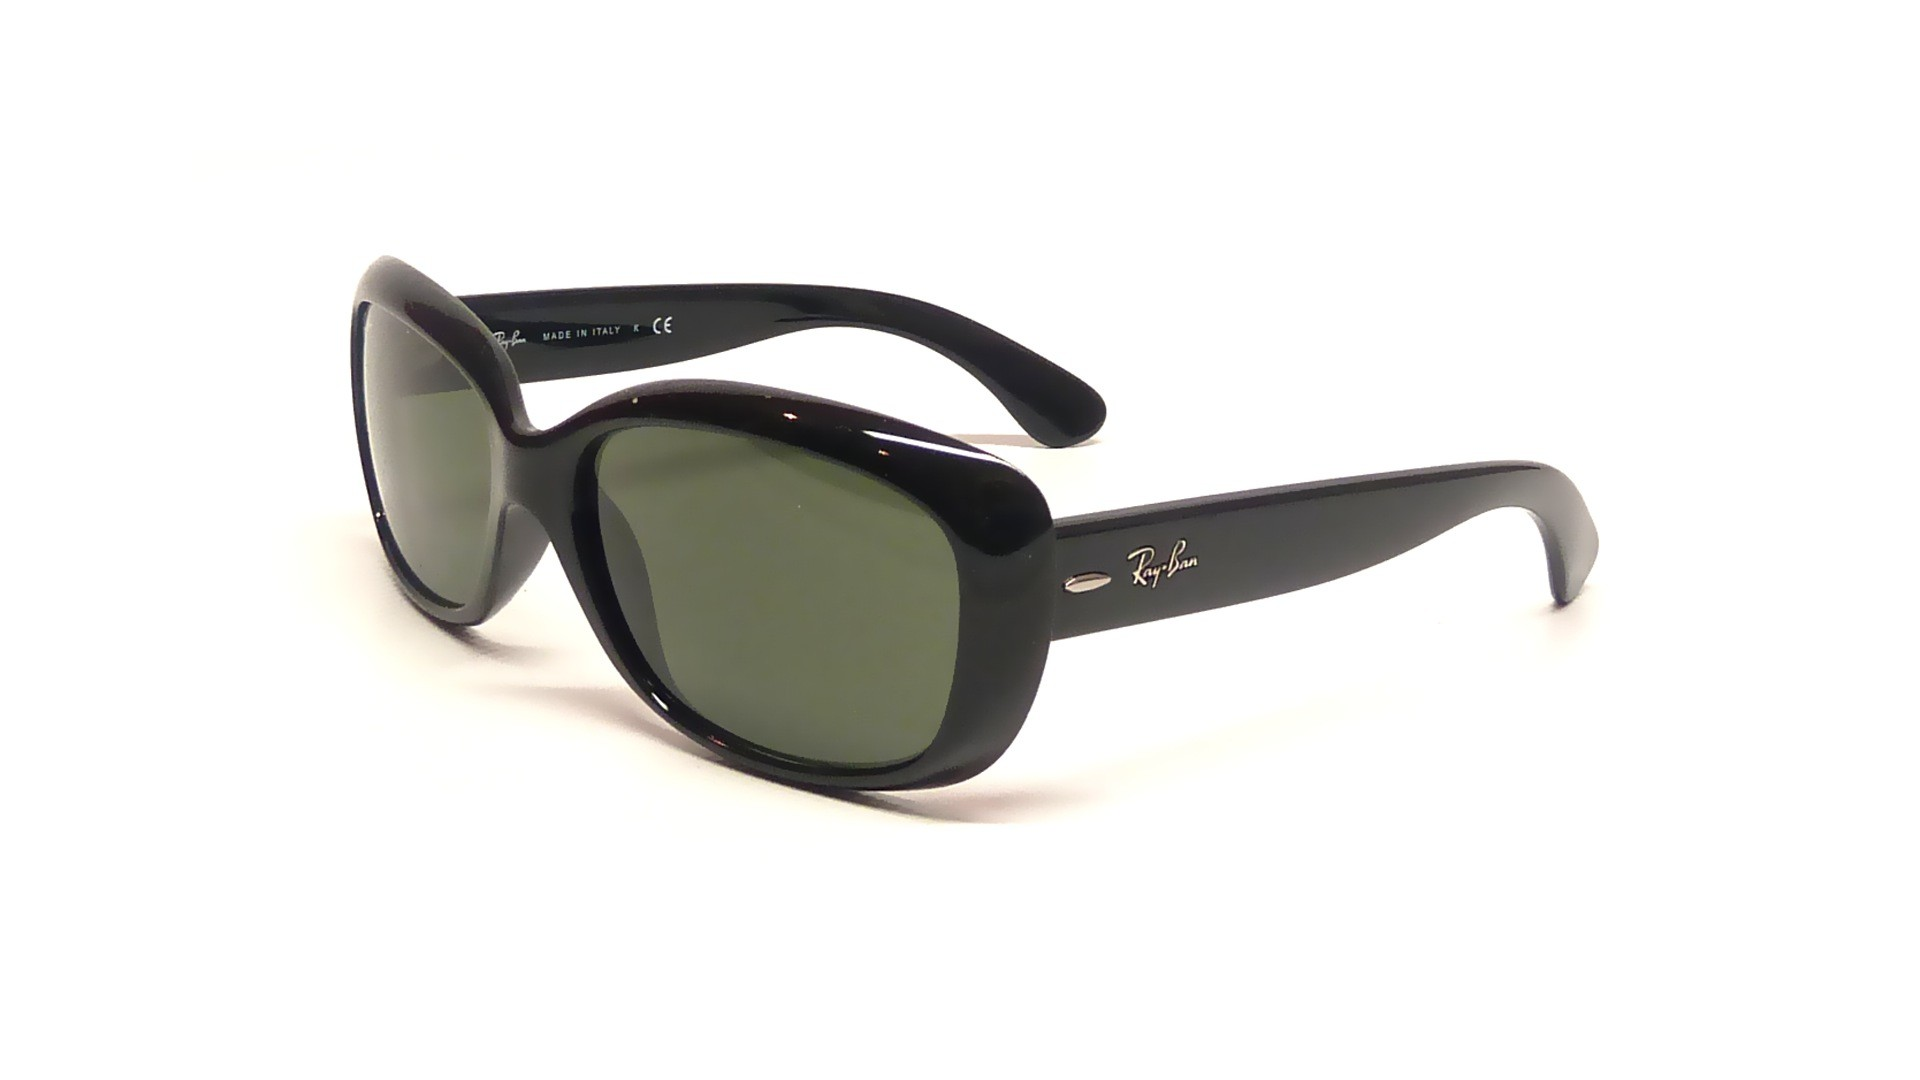 c41686eb449a9 Sunglasses Ray-Ban Jackie Ohh Black RB4101 601 58-17 Large